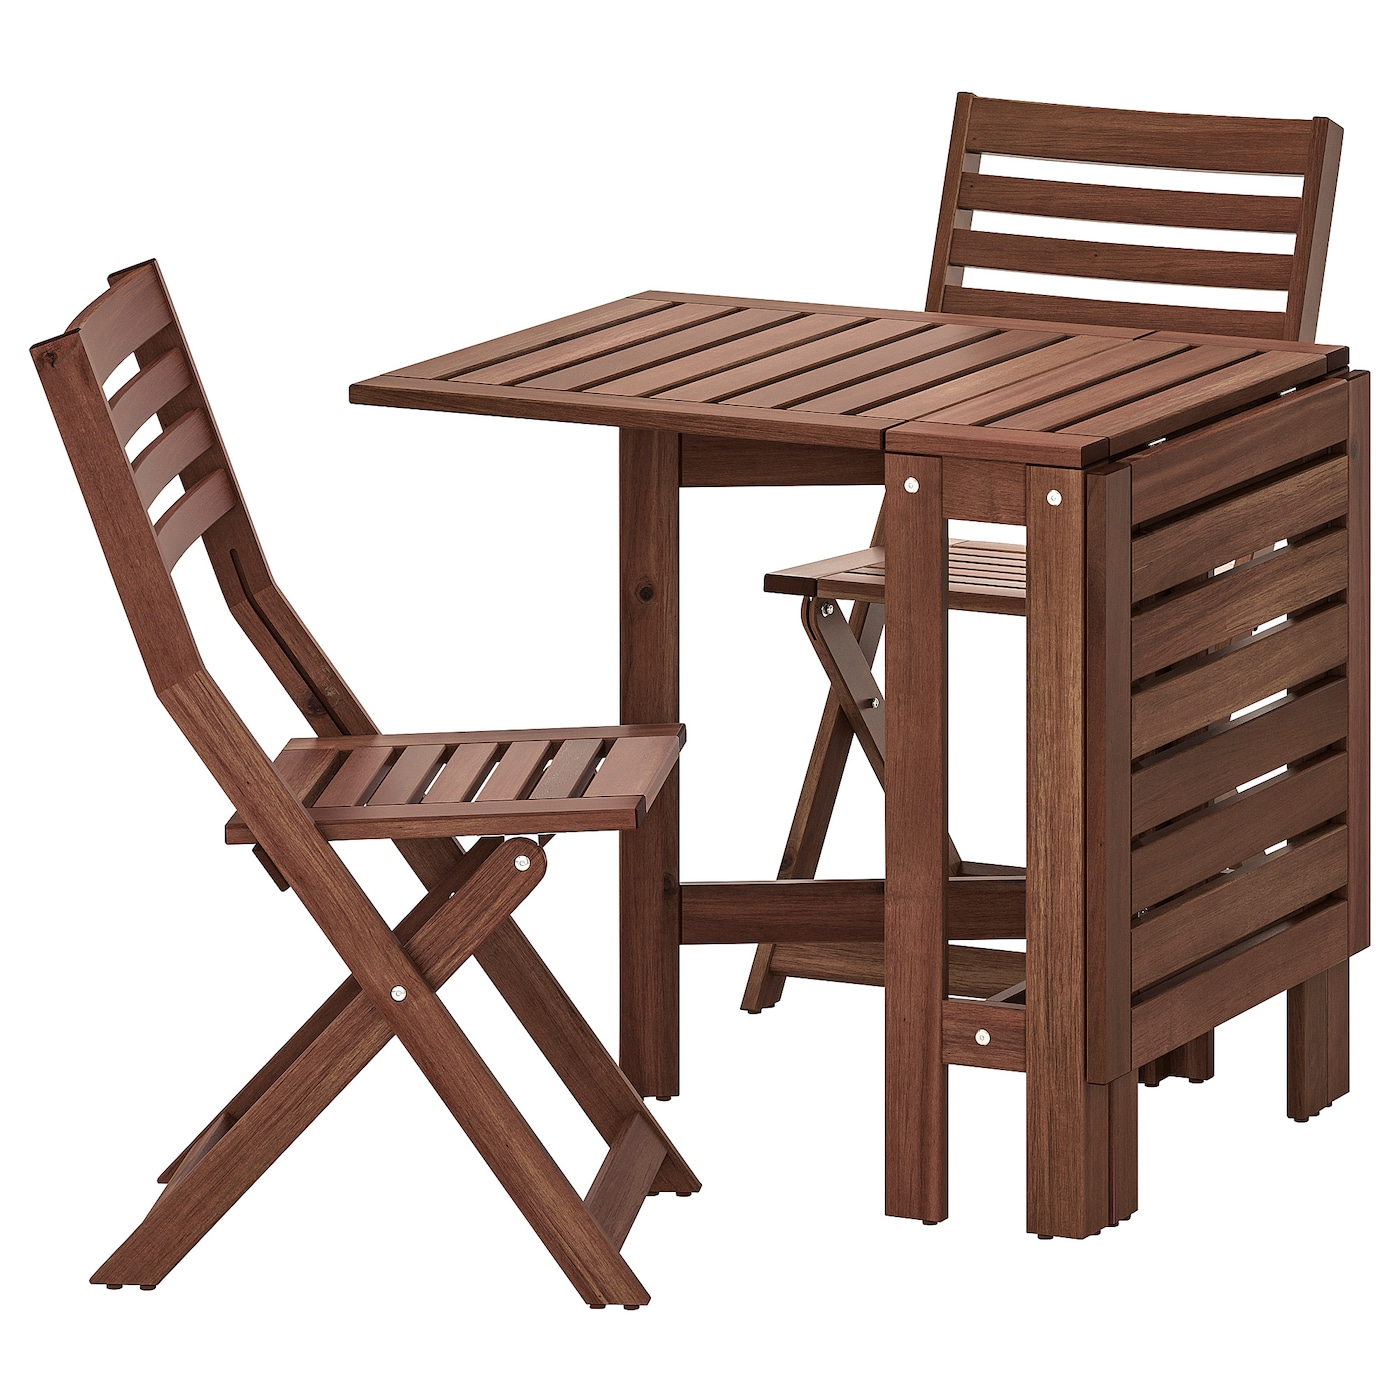 - ÄPPLARÖ Table And 2 Folding Chairs, Outdoor, Brown Stained. Shop